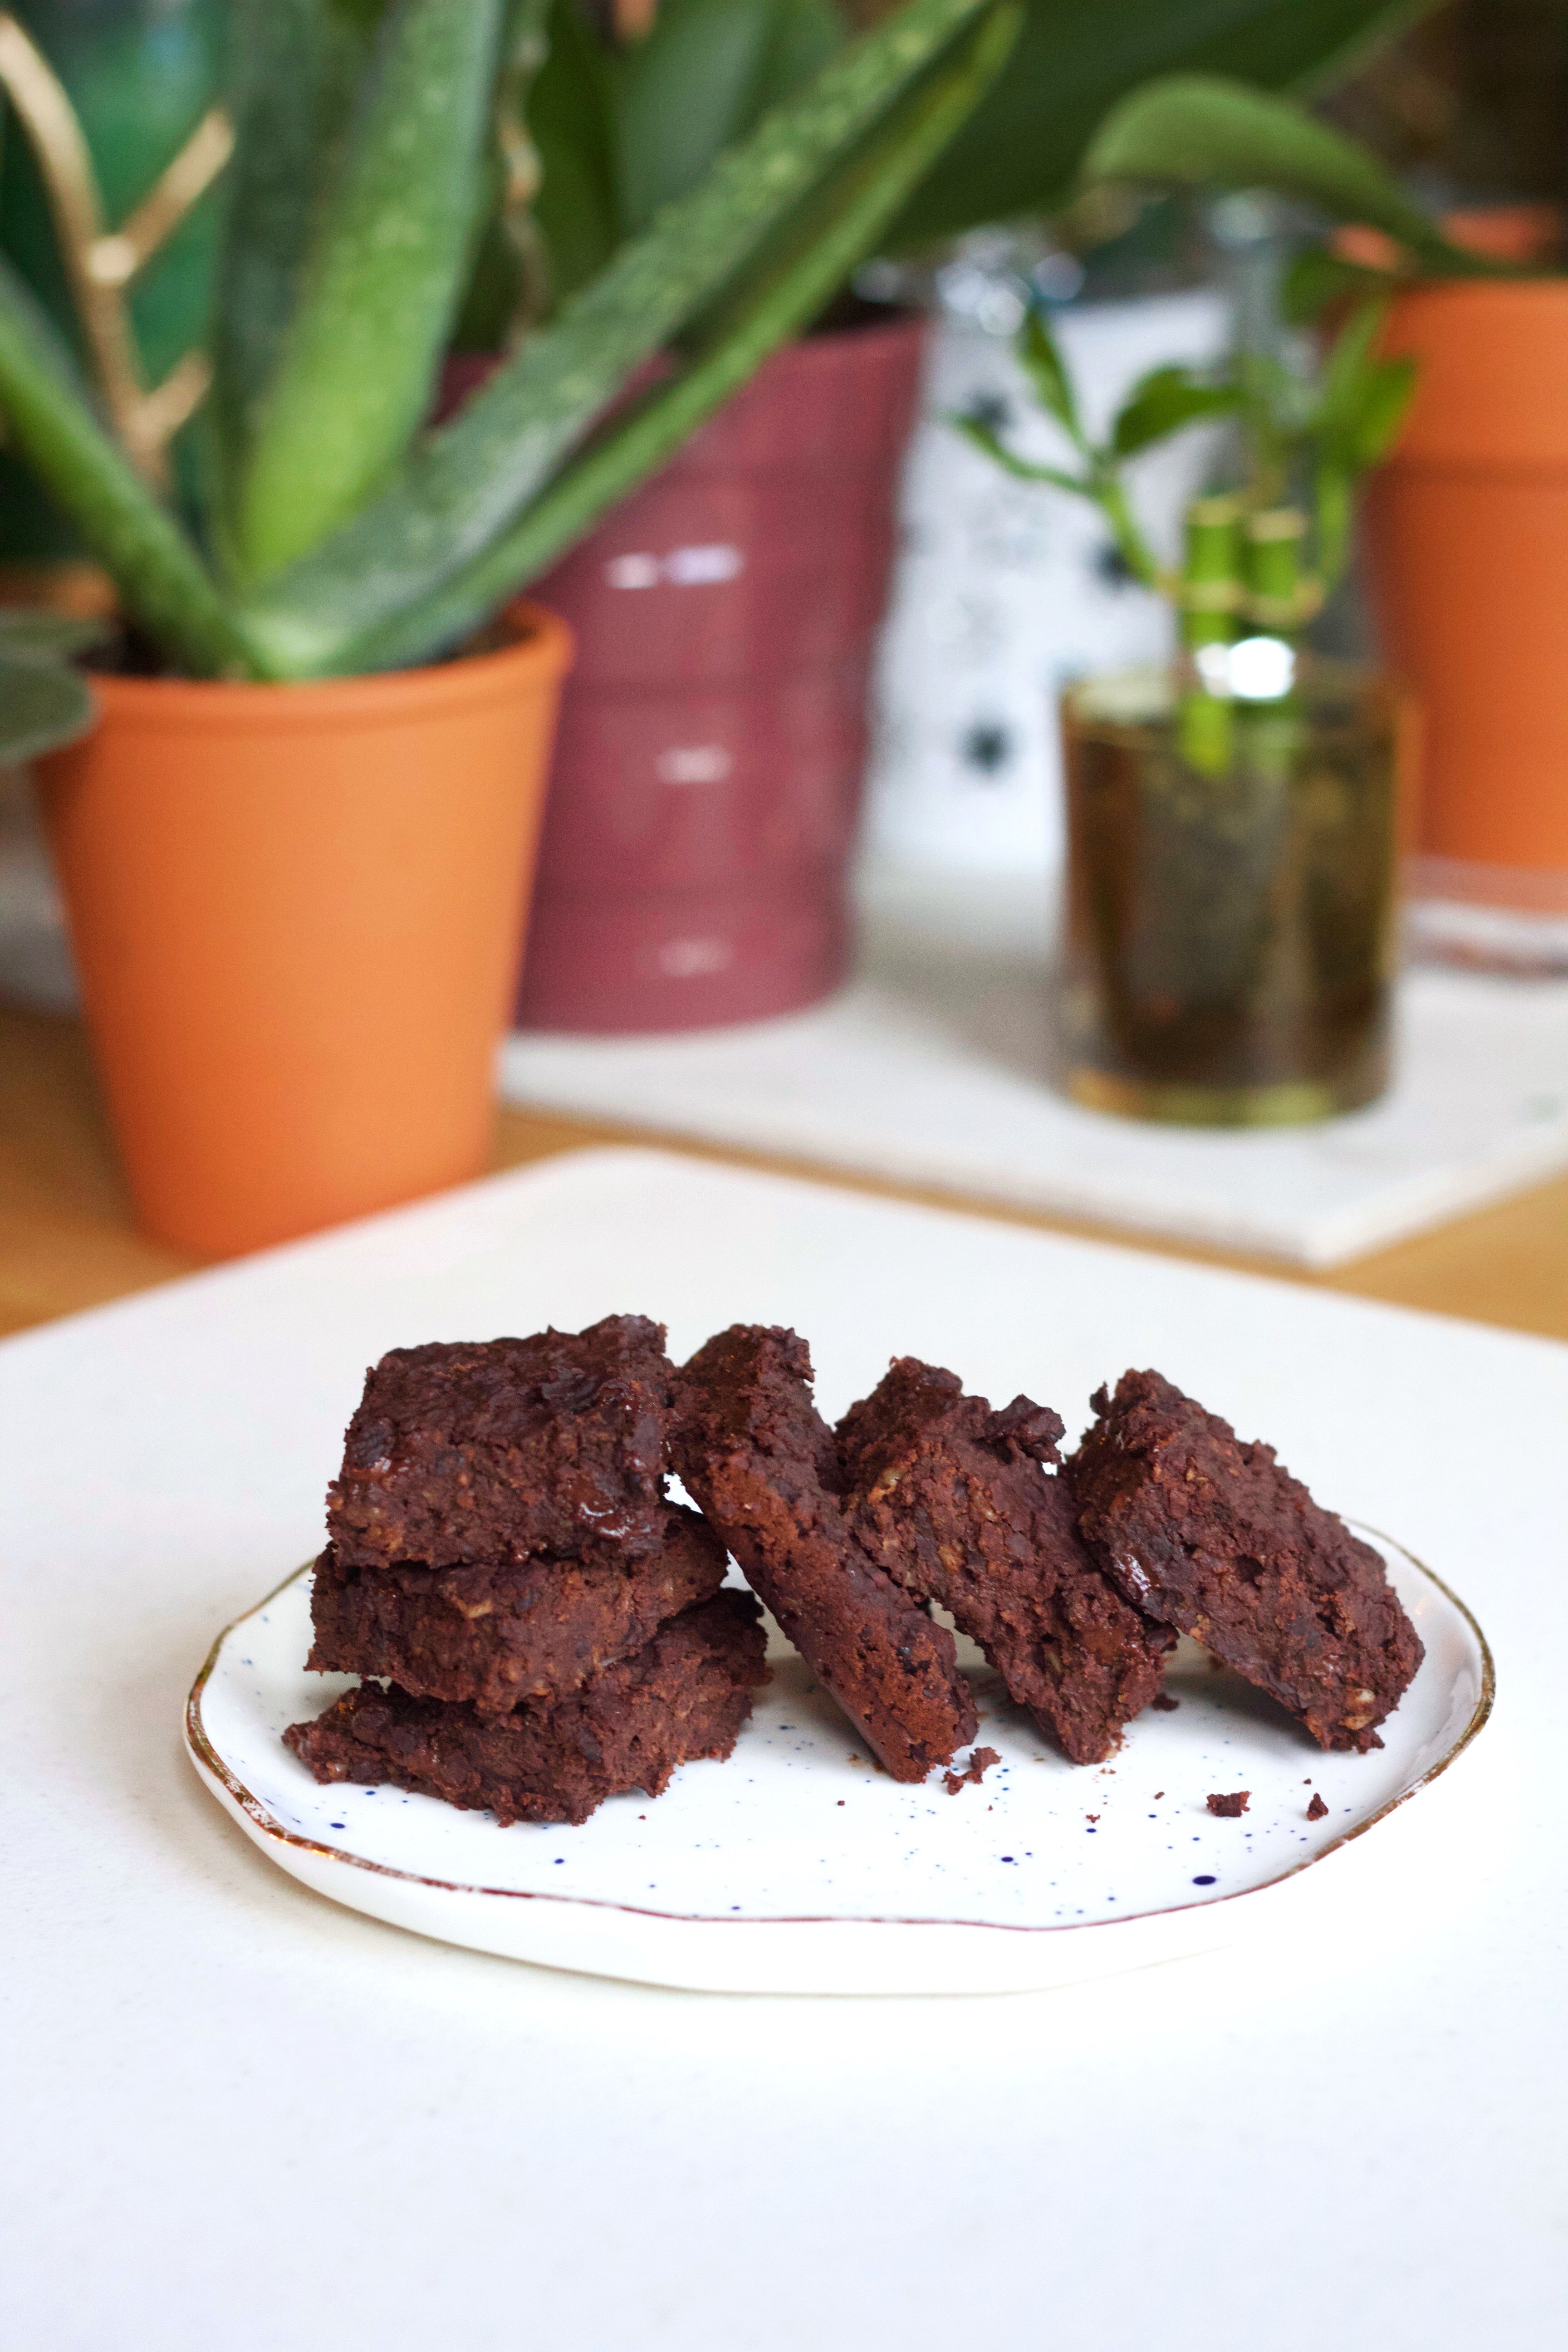 Need a quick snack or something to satisfy that craving of yours? These Vegan Black Bean Protein Brownies will do the ultimate fix! They are completely guilt-free!💪 Every bite is chewy and delicious that keep your taste buds on edge! Surprise your friends and family with Vegan Brownies. Trust me, no one will even know these brownies are made from black beans!  Happy Baking!😍  http://wholeonlife.com/2017/06/01/vegan-black-bean-protein-brownies-no-flour-vegan-2/